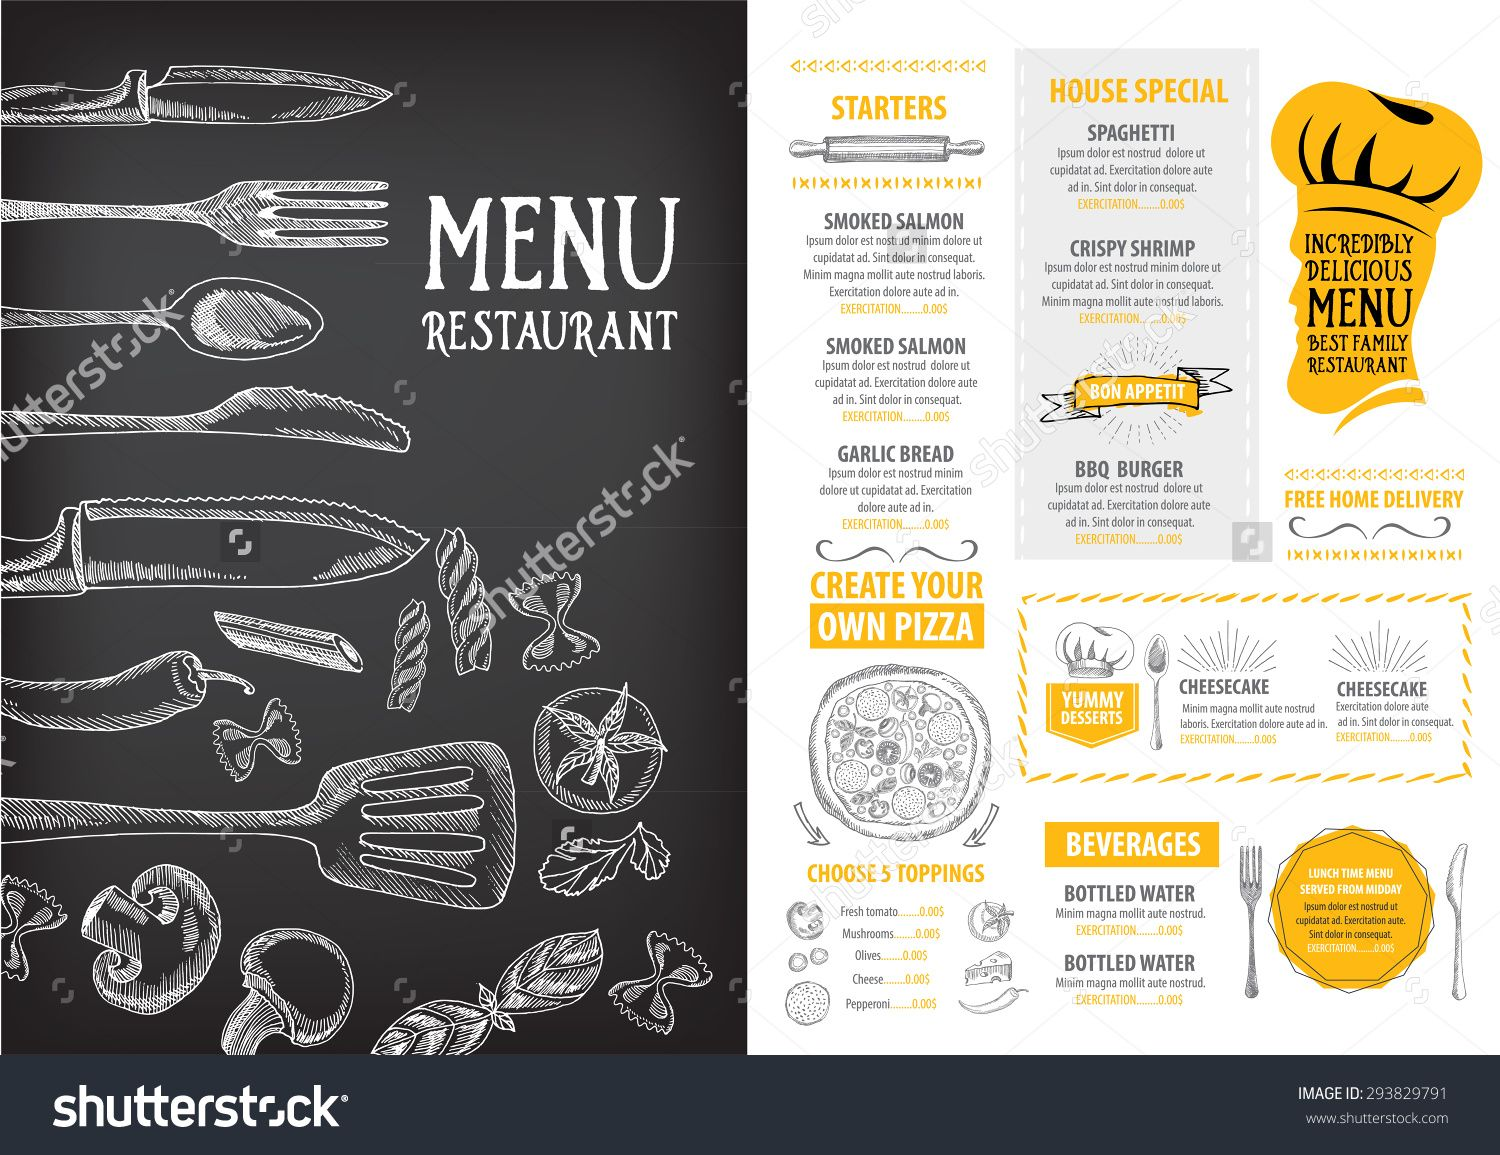 Image result for best menu designs Menu Design – Food Menu Template